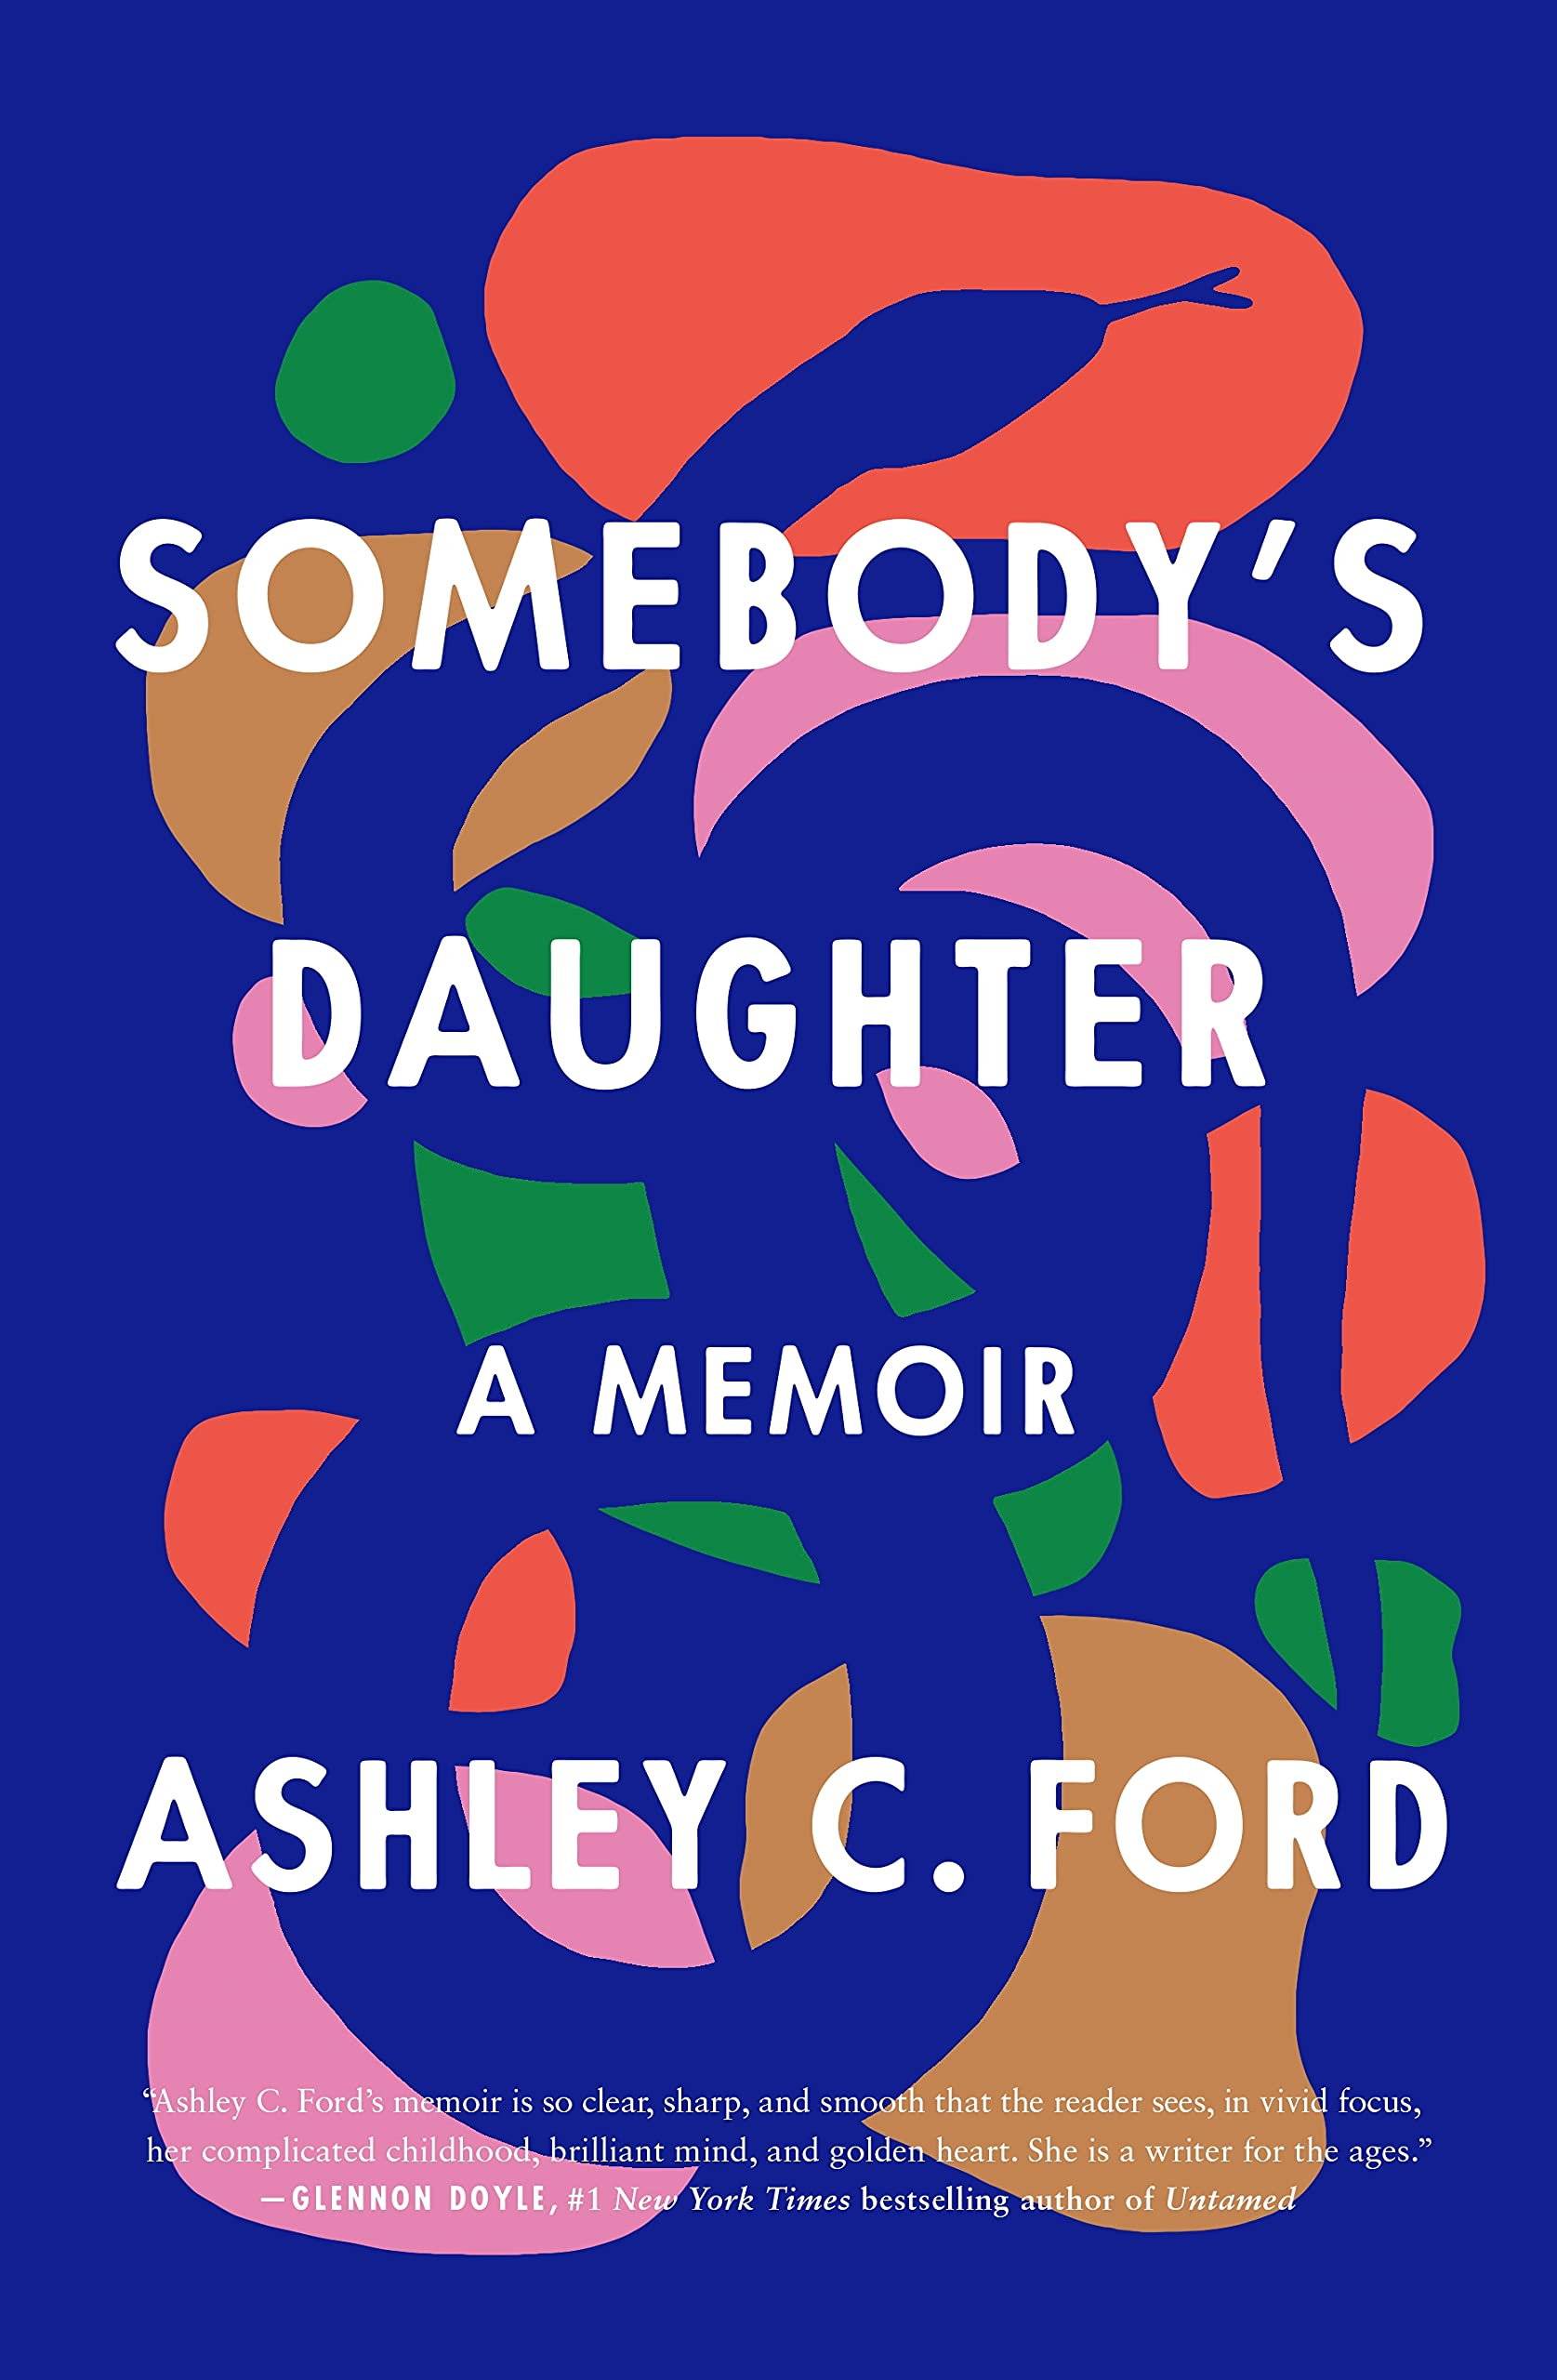 Somebodys daughter by Ashley C Ford